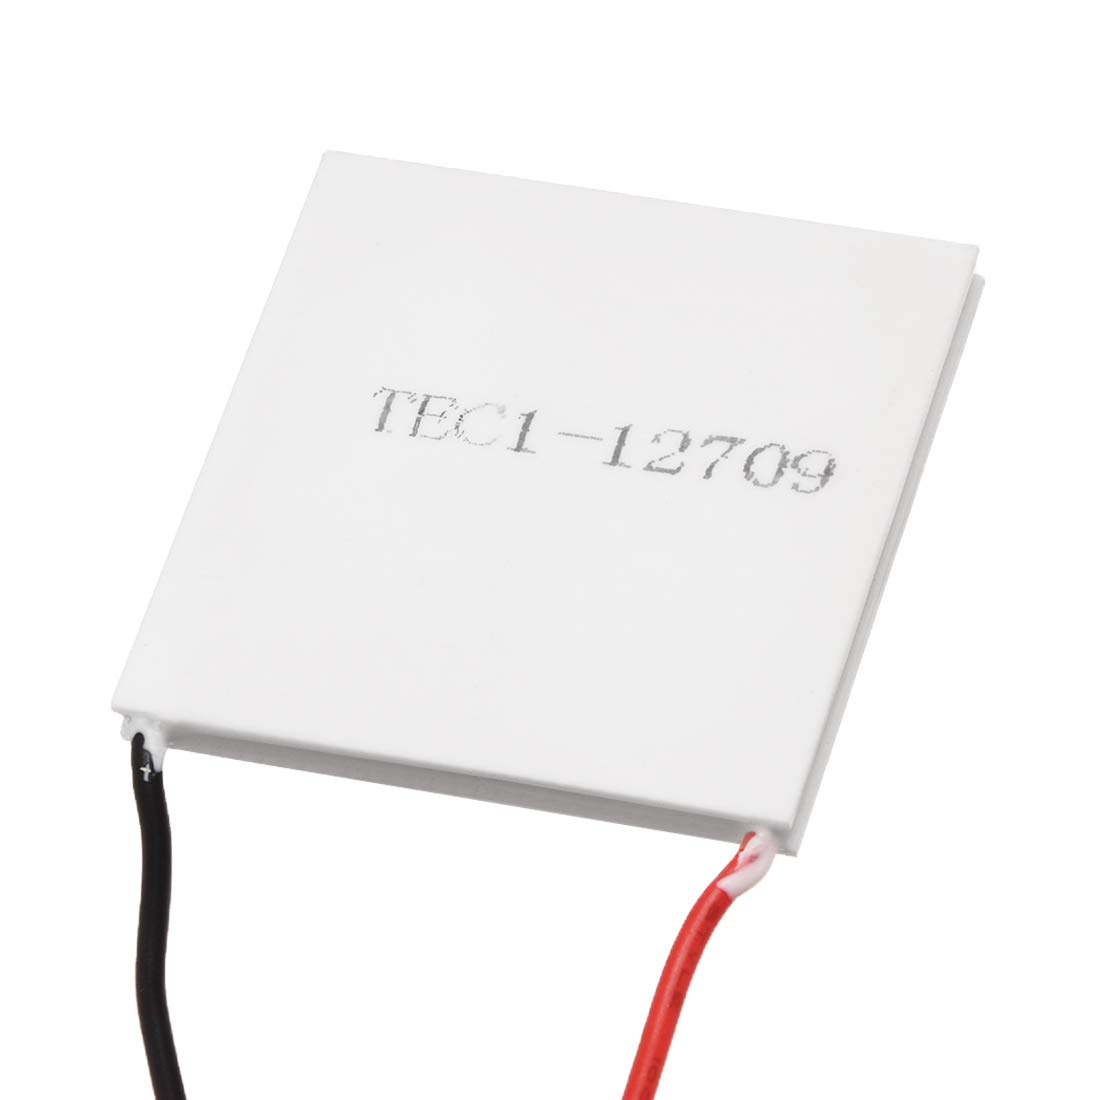 uxcell TEC1-12709 Thermoelectric Cooler Heat Sink Cooling Peltier 12 Volt 82 Watt